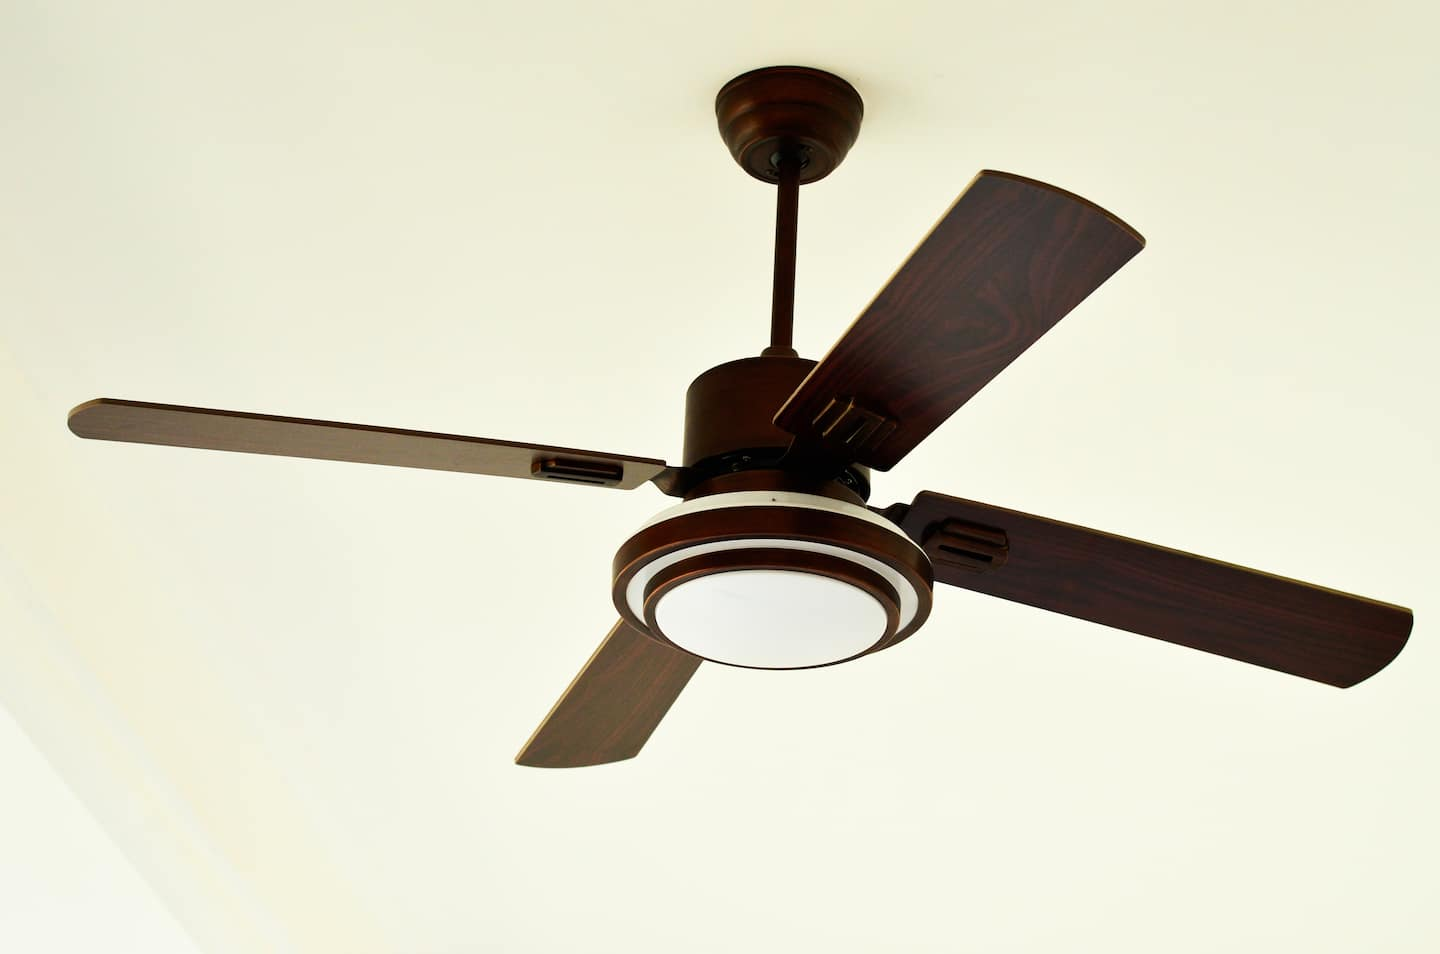 control ceiling fan veloclub co remote not patrofi casablanca working